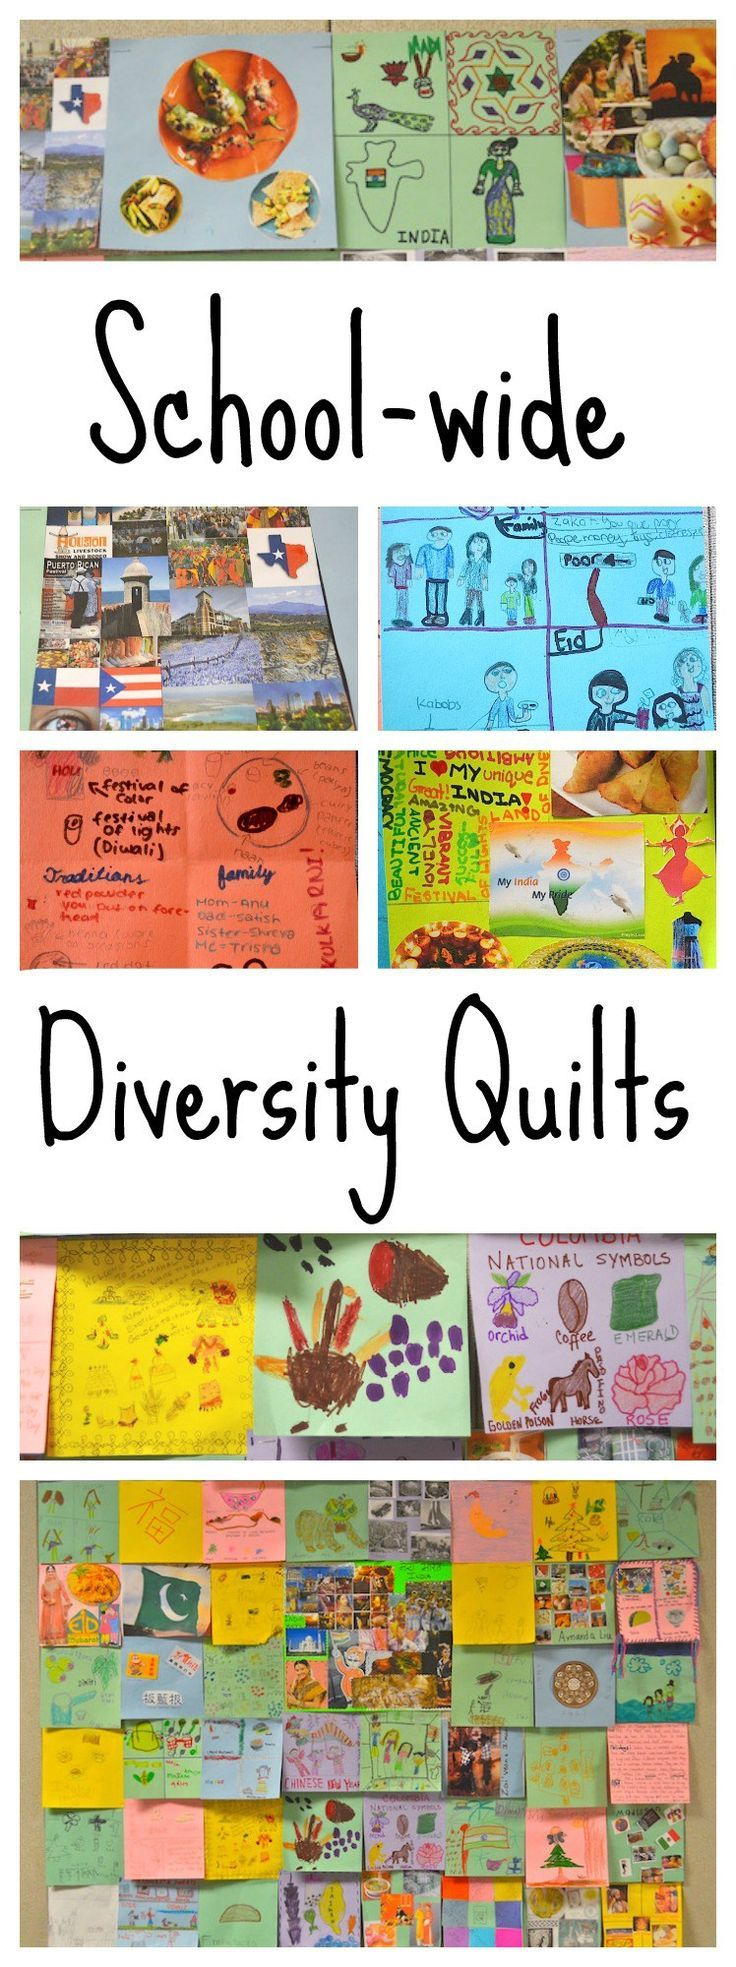 Diversity Quilts for International Week Kids- It was such a wonderful representation of our school, and visual depiction of how distinct traditions can coexist beautifully side-by-side.